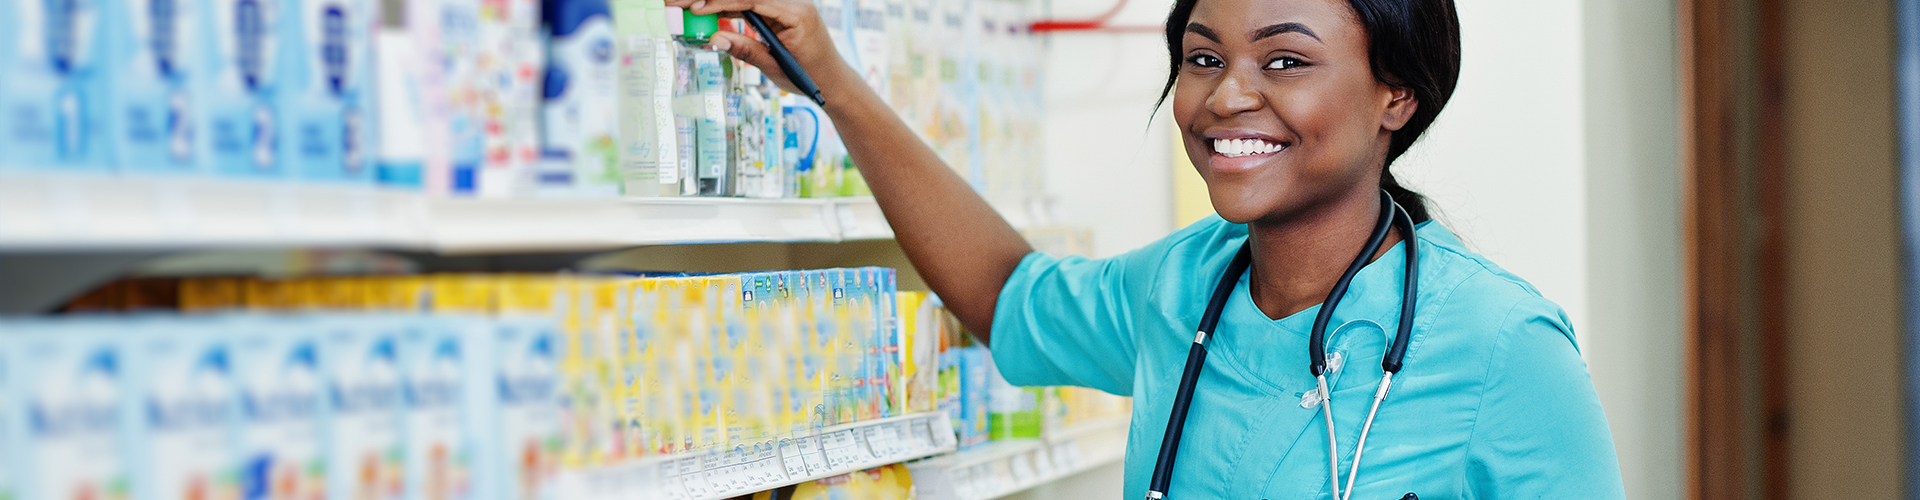 pharmacist smiling while taking medicine from shelf